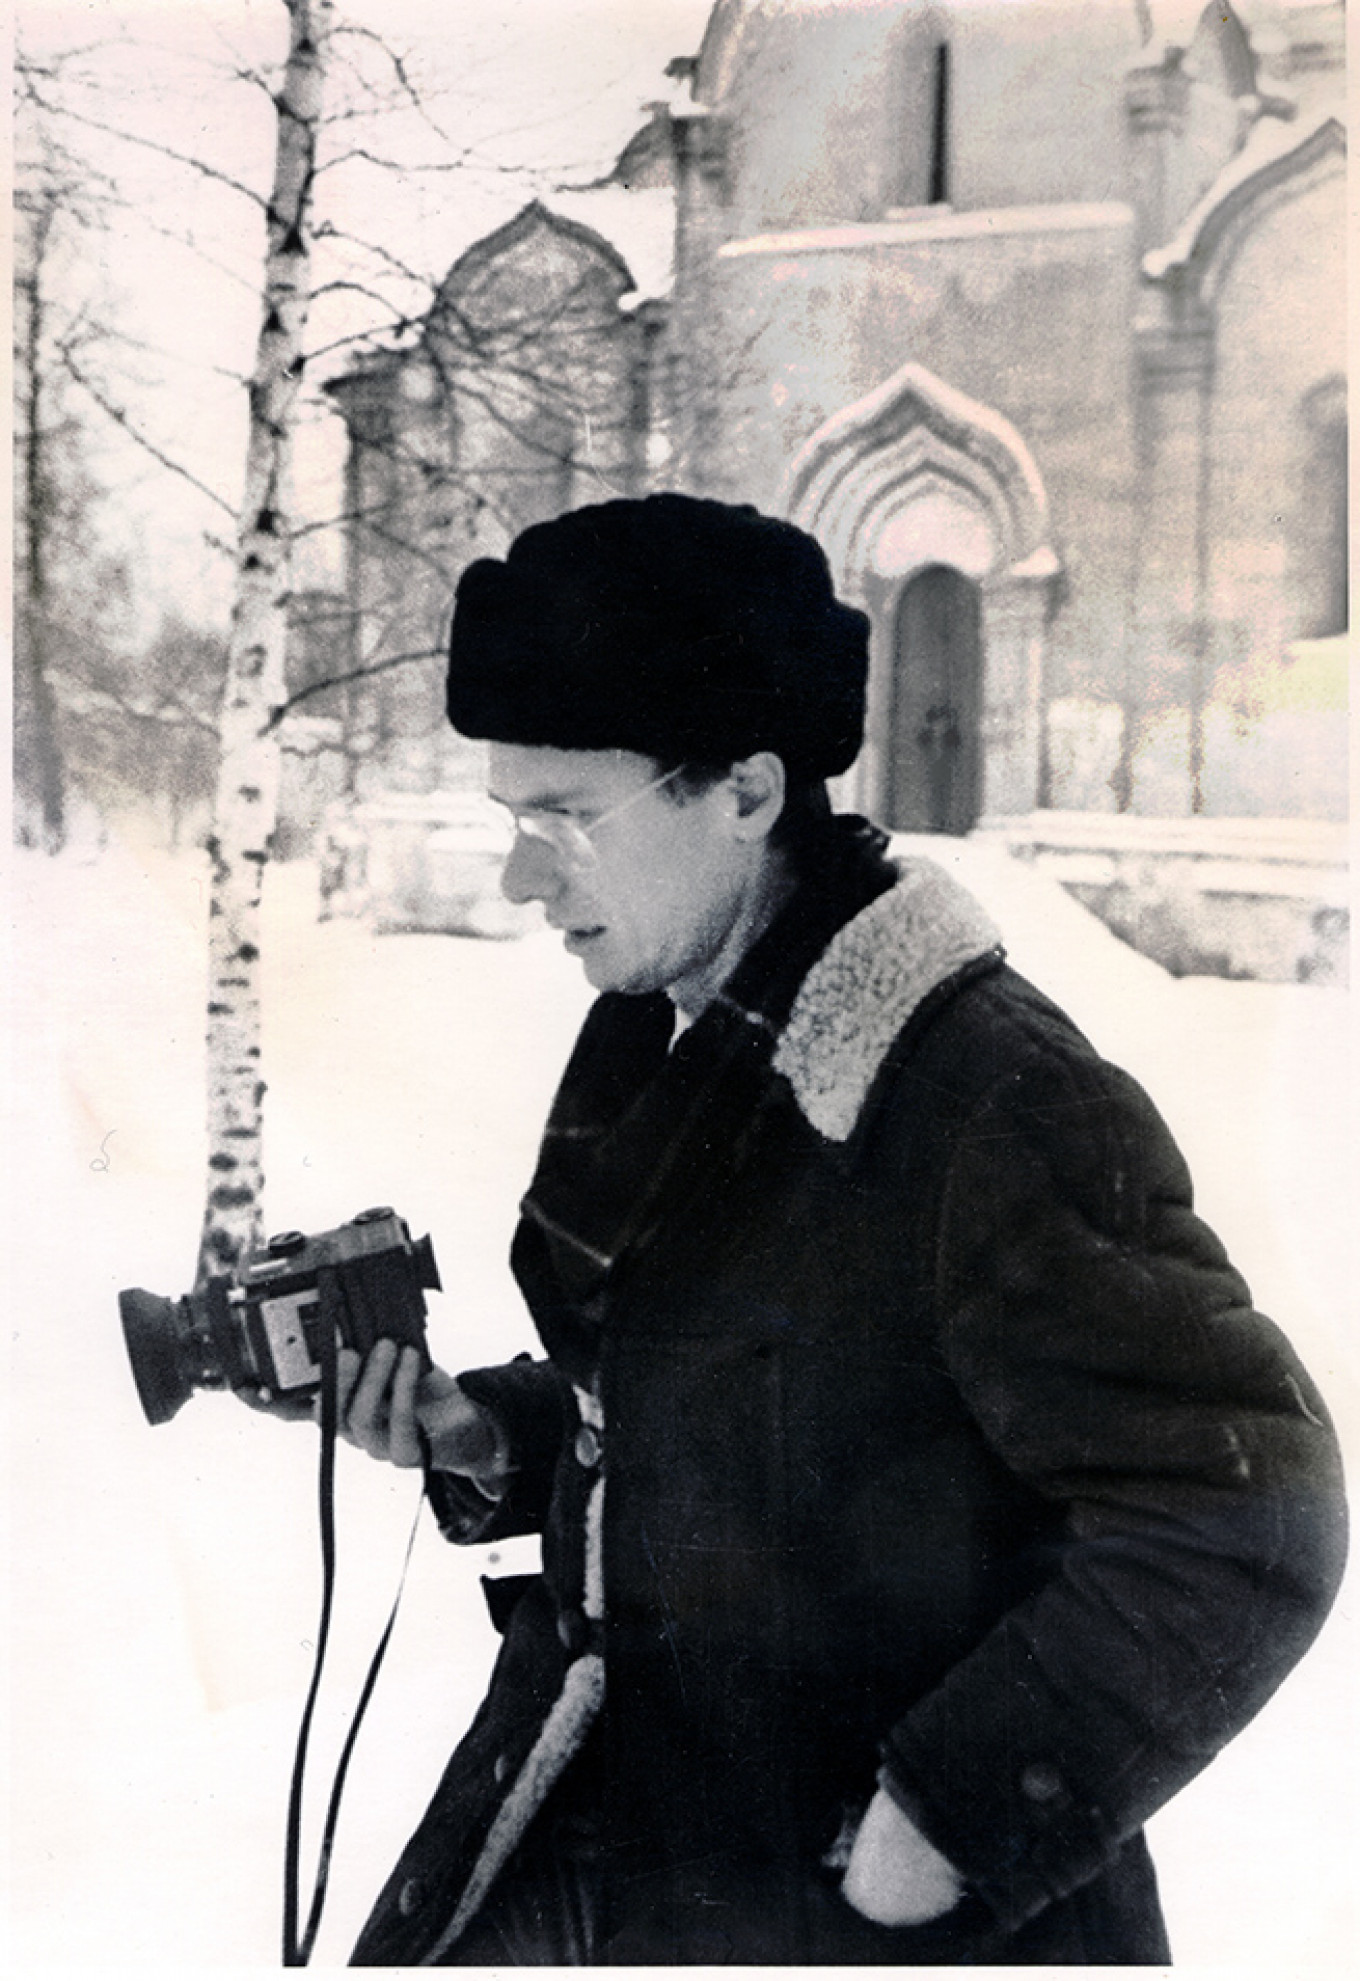 WC Brumfield at Savior-Andronikov Monastery, Moscow, Dec. 1979 Courtesy of author